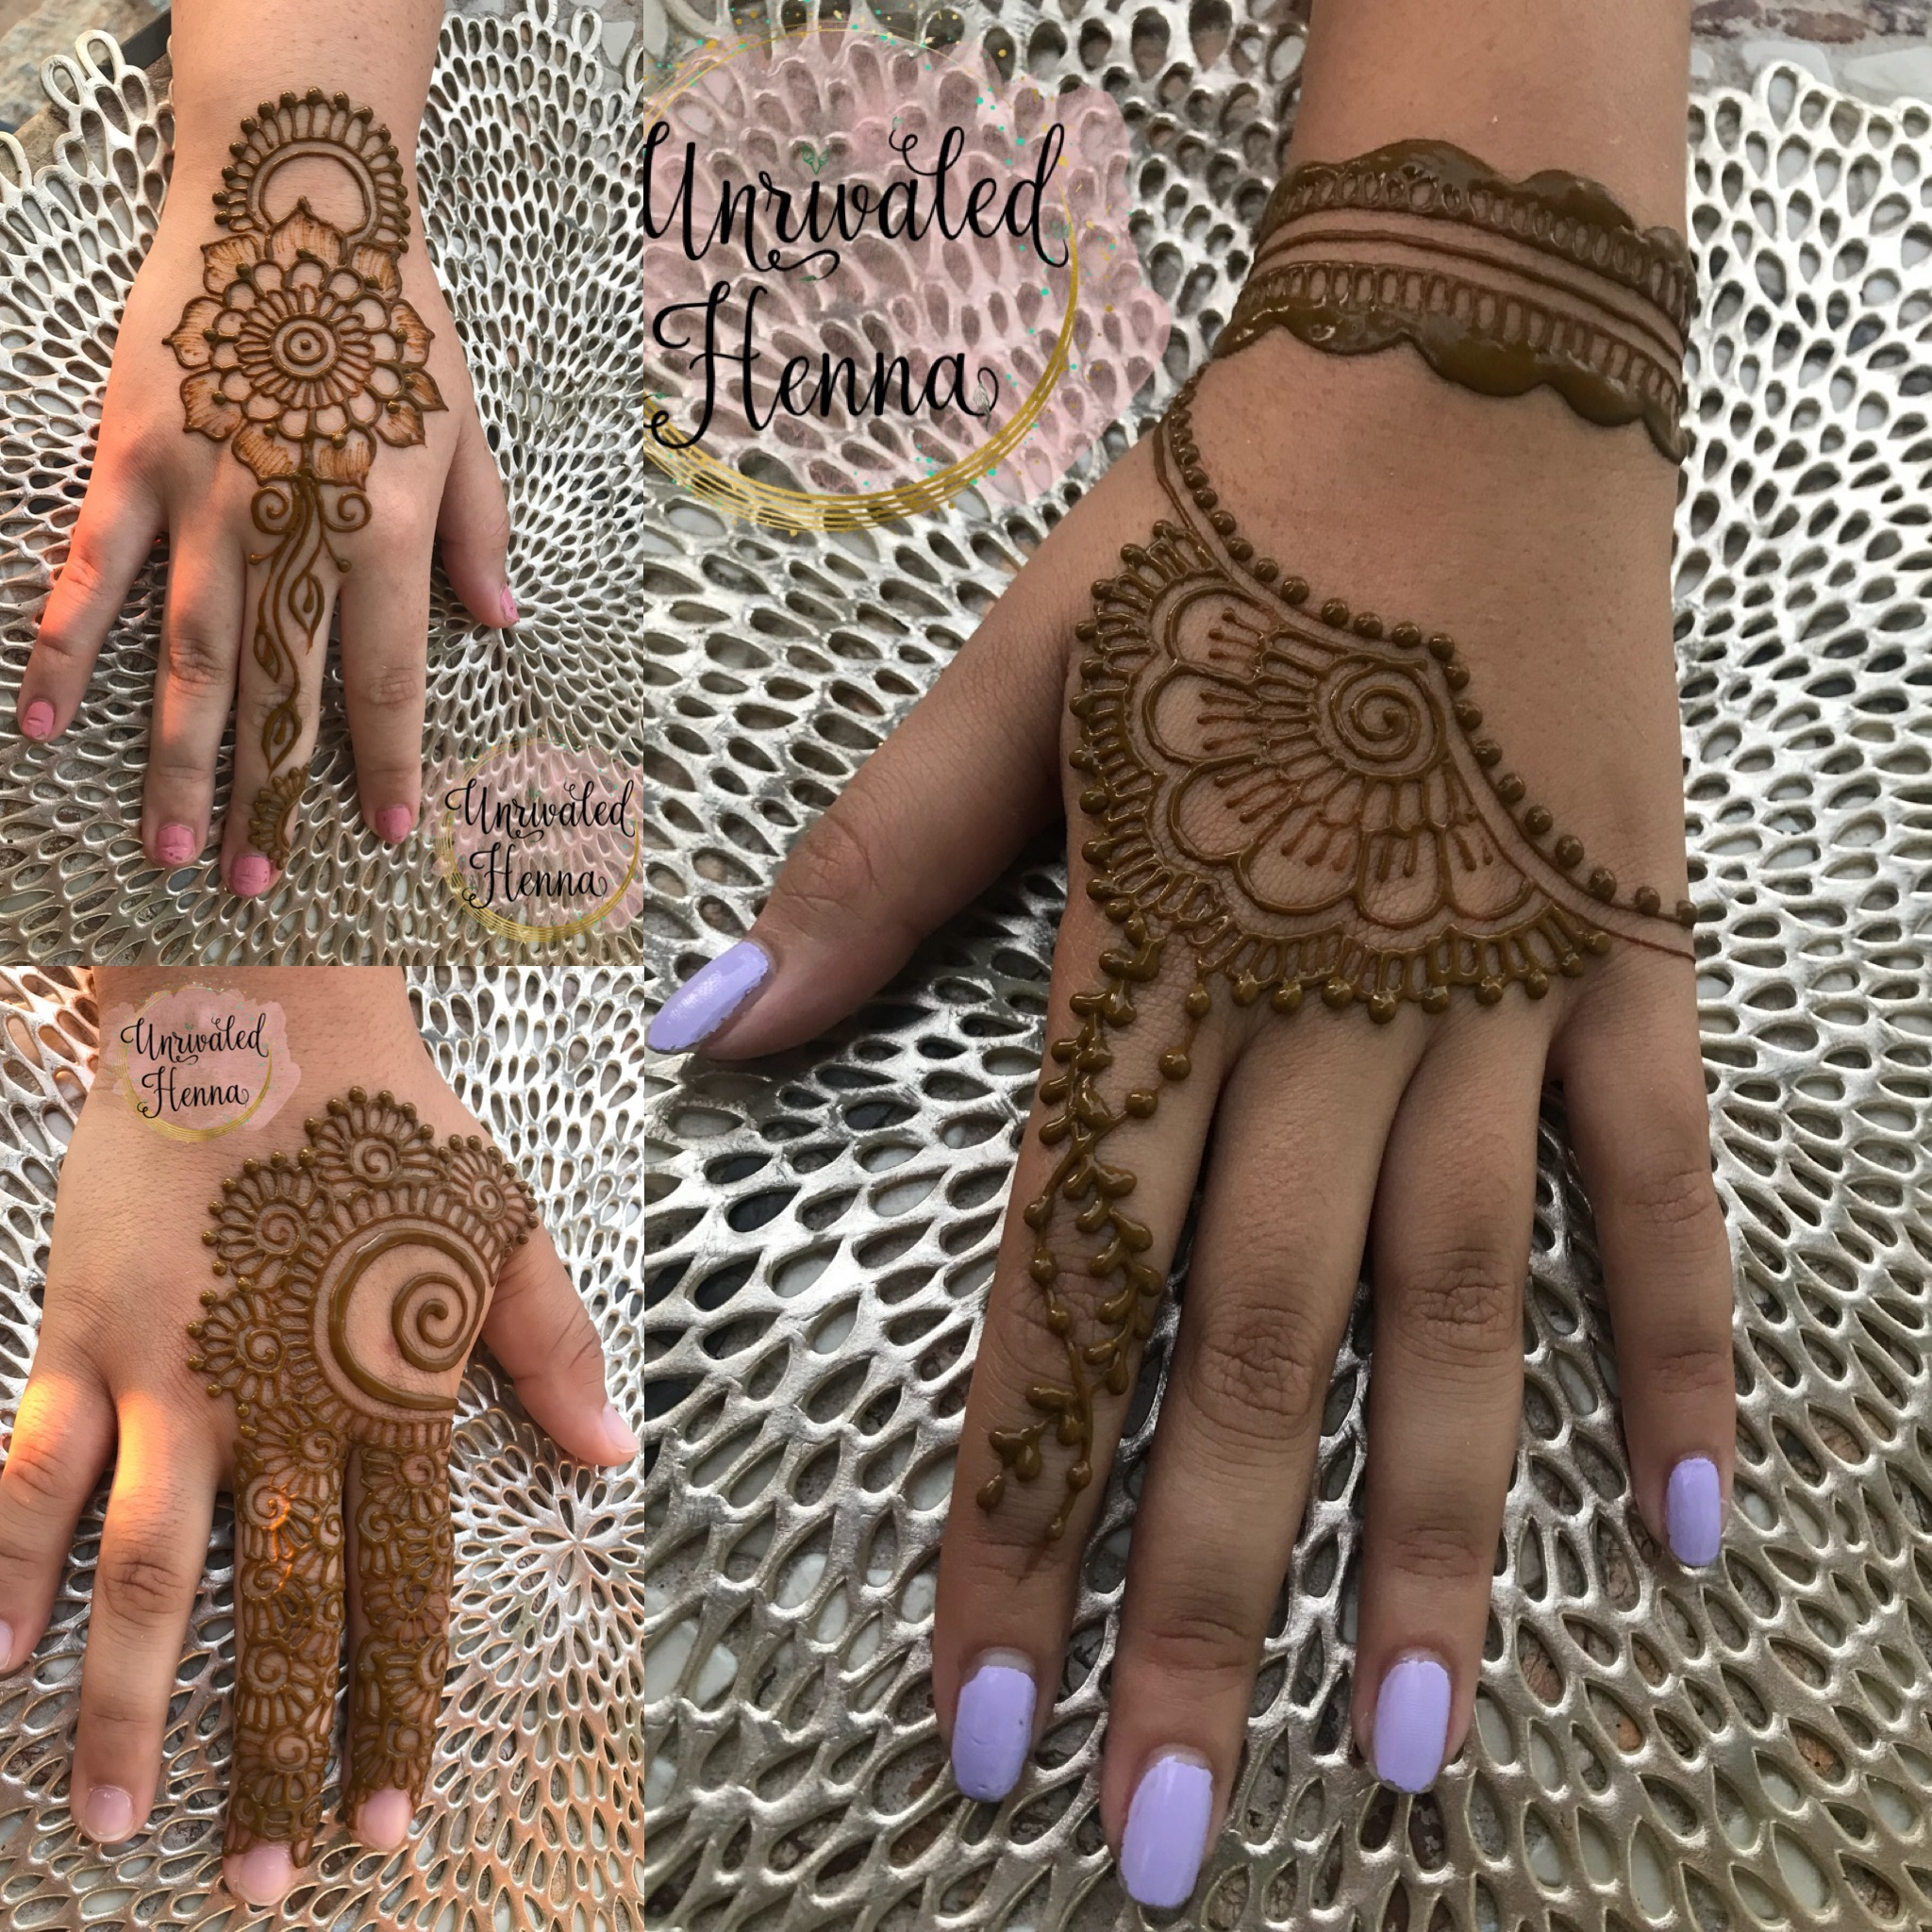 - Madiha was a very special part of my daughter and son-in-law's wedding shower. She was on time, very professional and artistic. Almost all of my guests had their hands done and really loved the added touch. The henna smelled very good and lasted beautifully. - Stephanie (8/5/18)